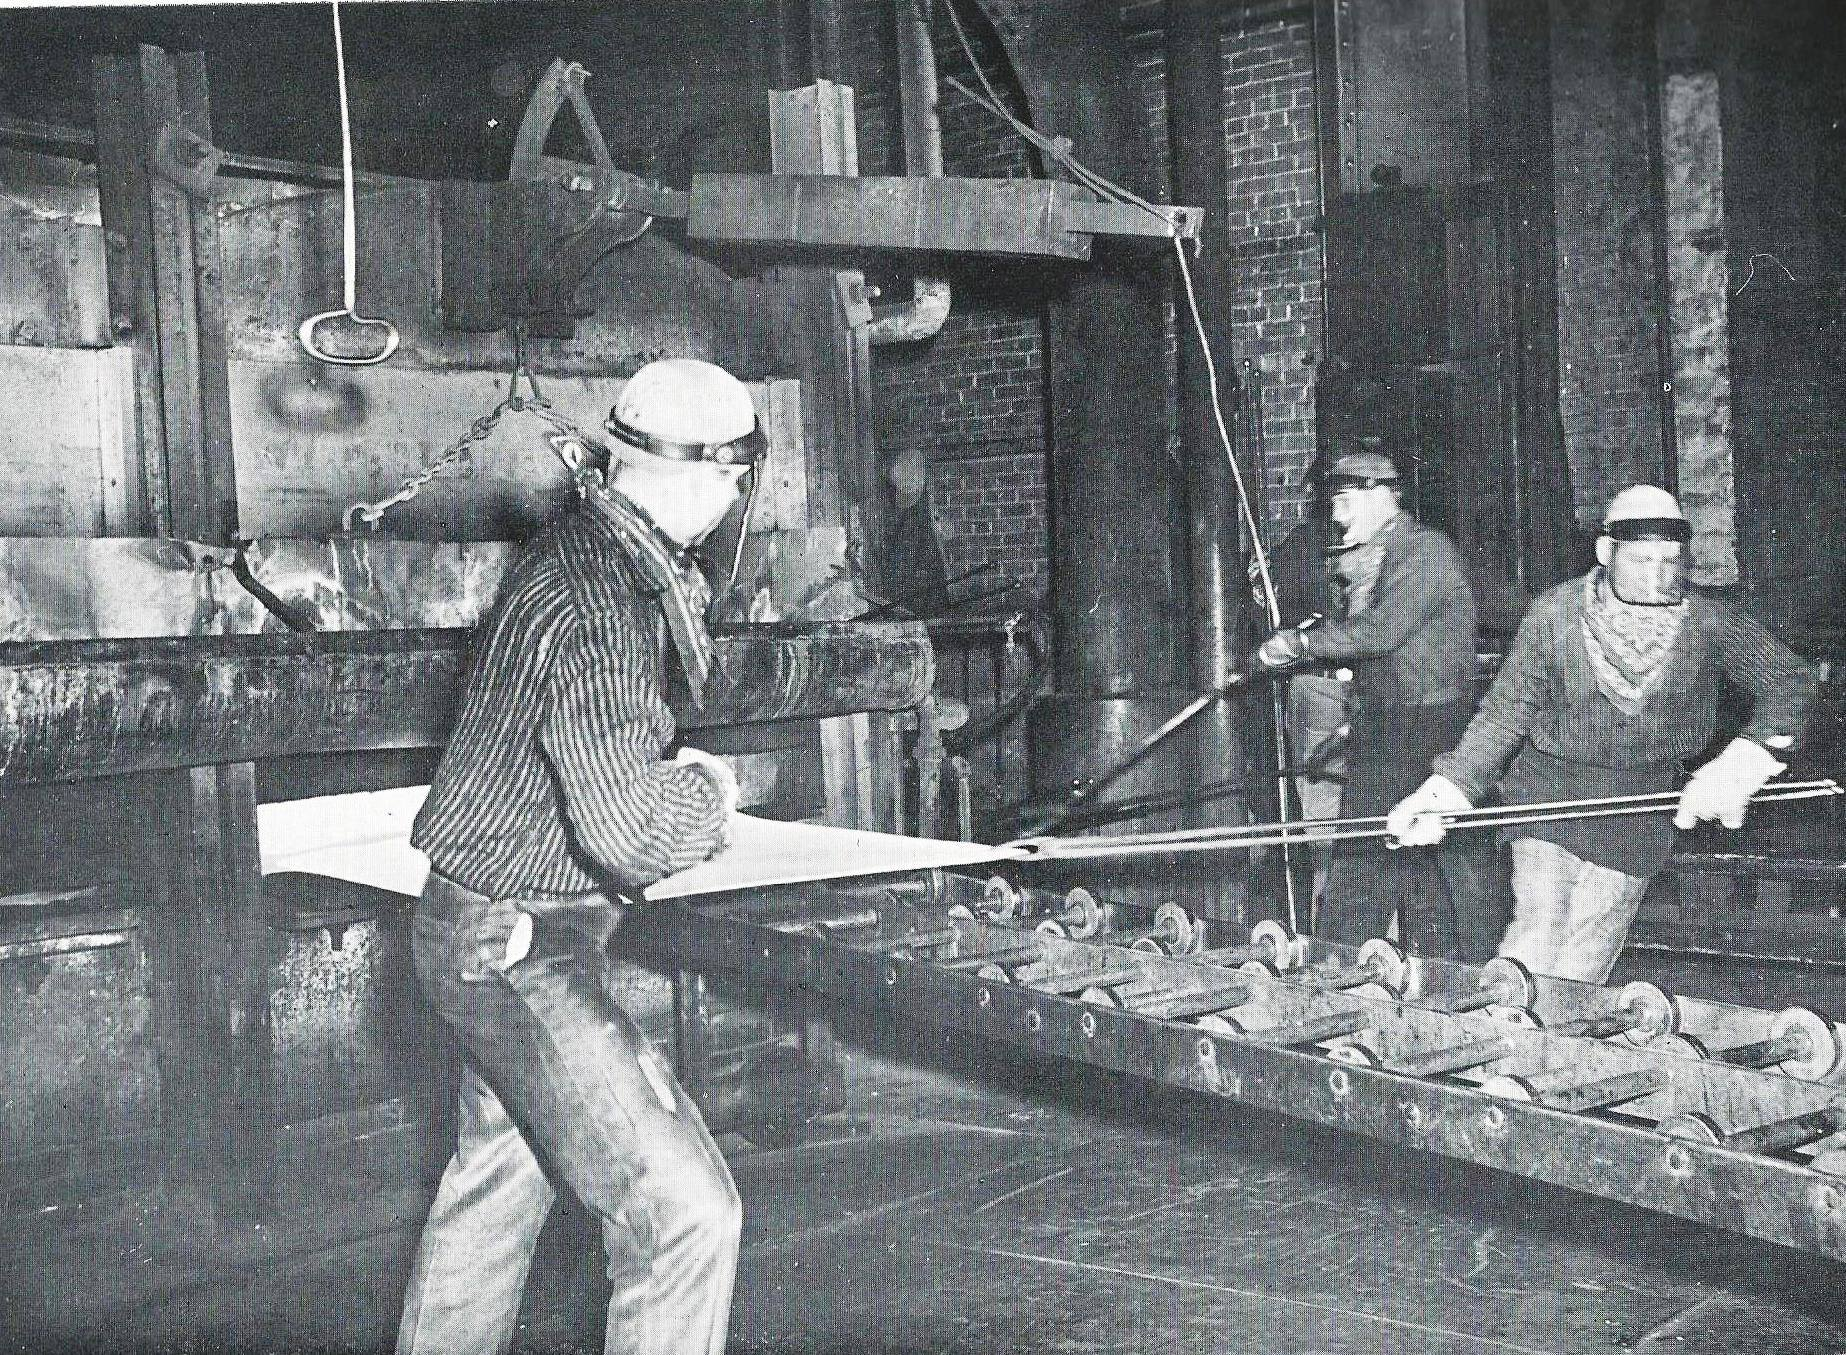 Workers pull a sheet of metal out of an annealing furnace, 1966